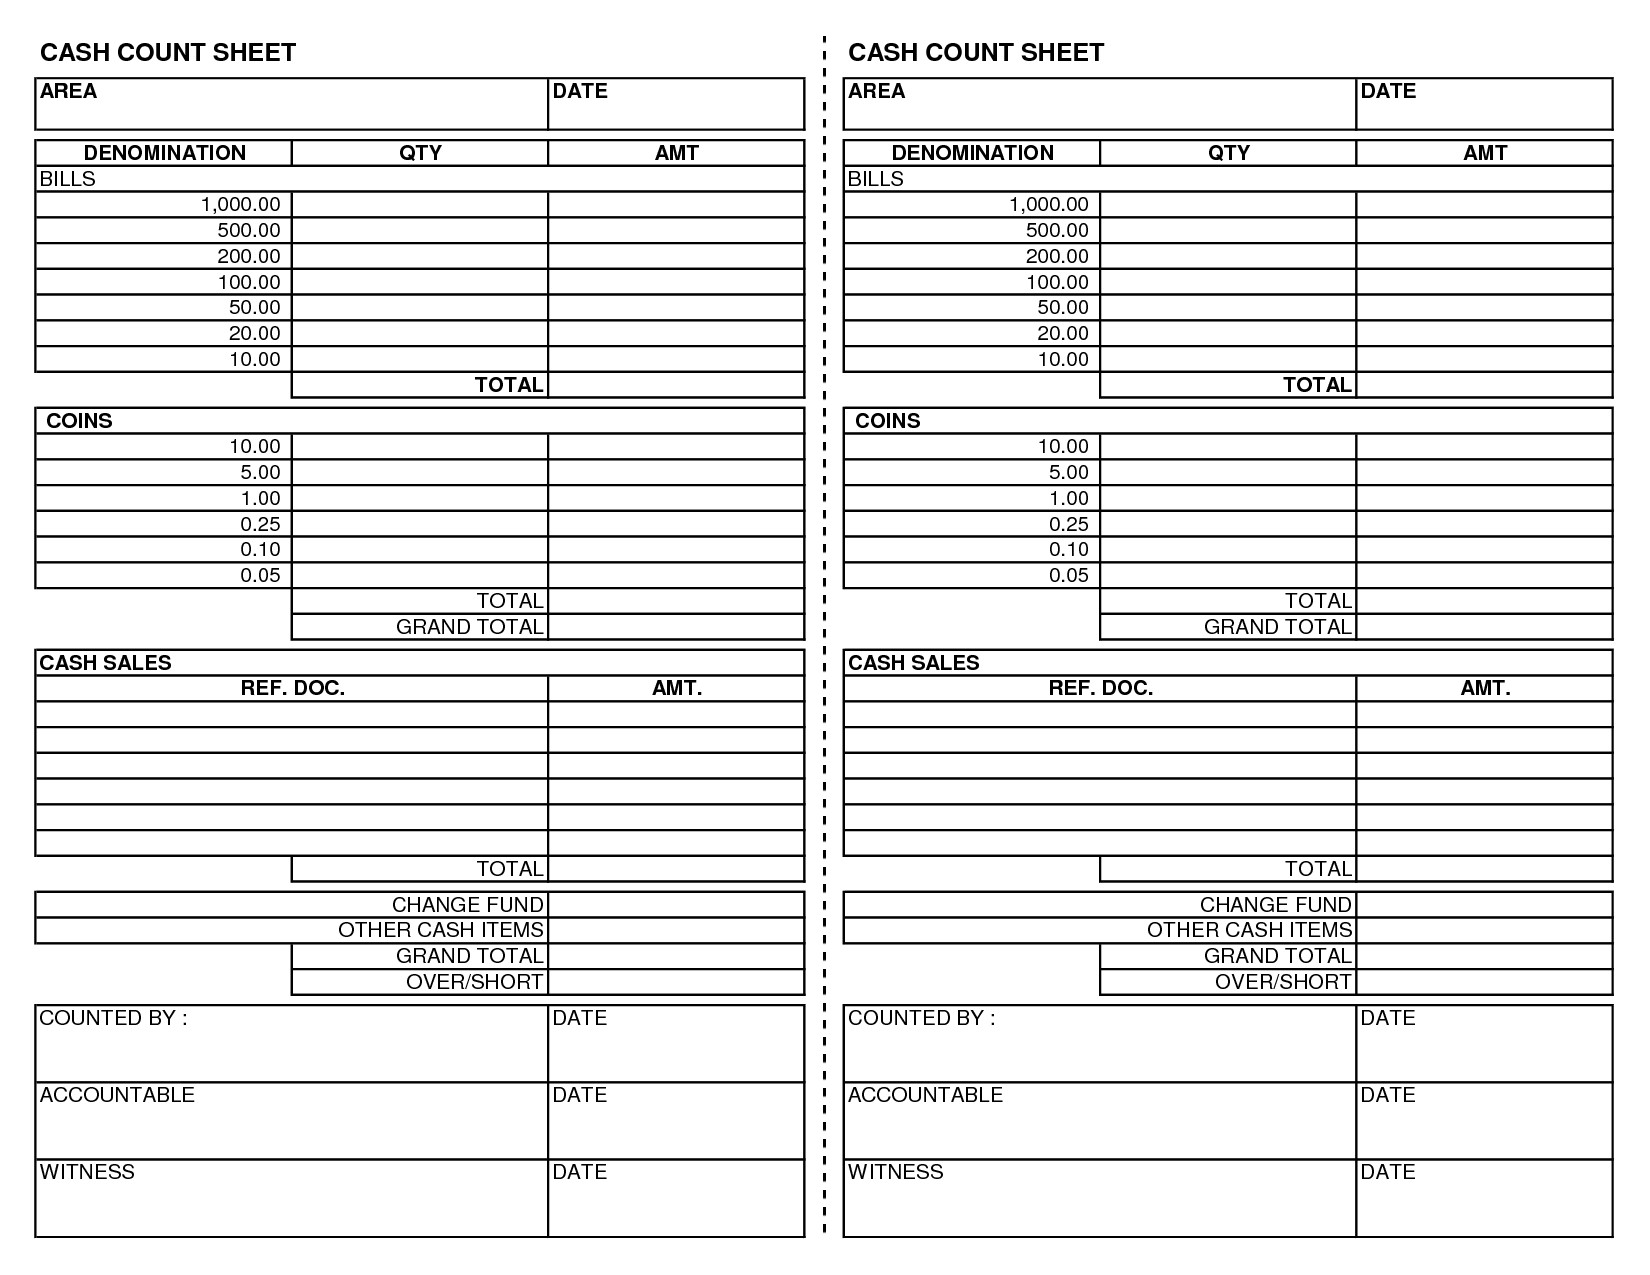 Cash Drawer Count Sheet Template Best S Of Cash Count Sheet Excel Cash Drawer Count